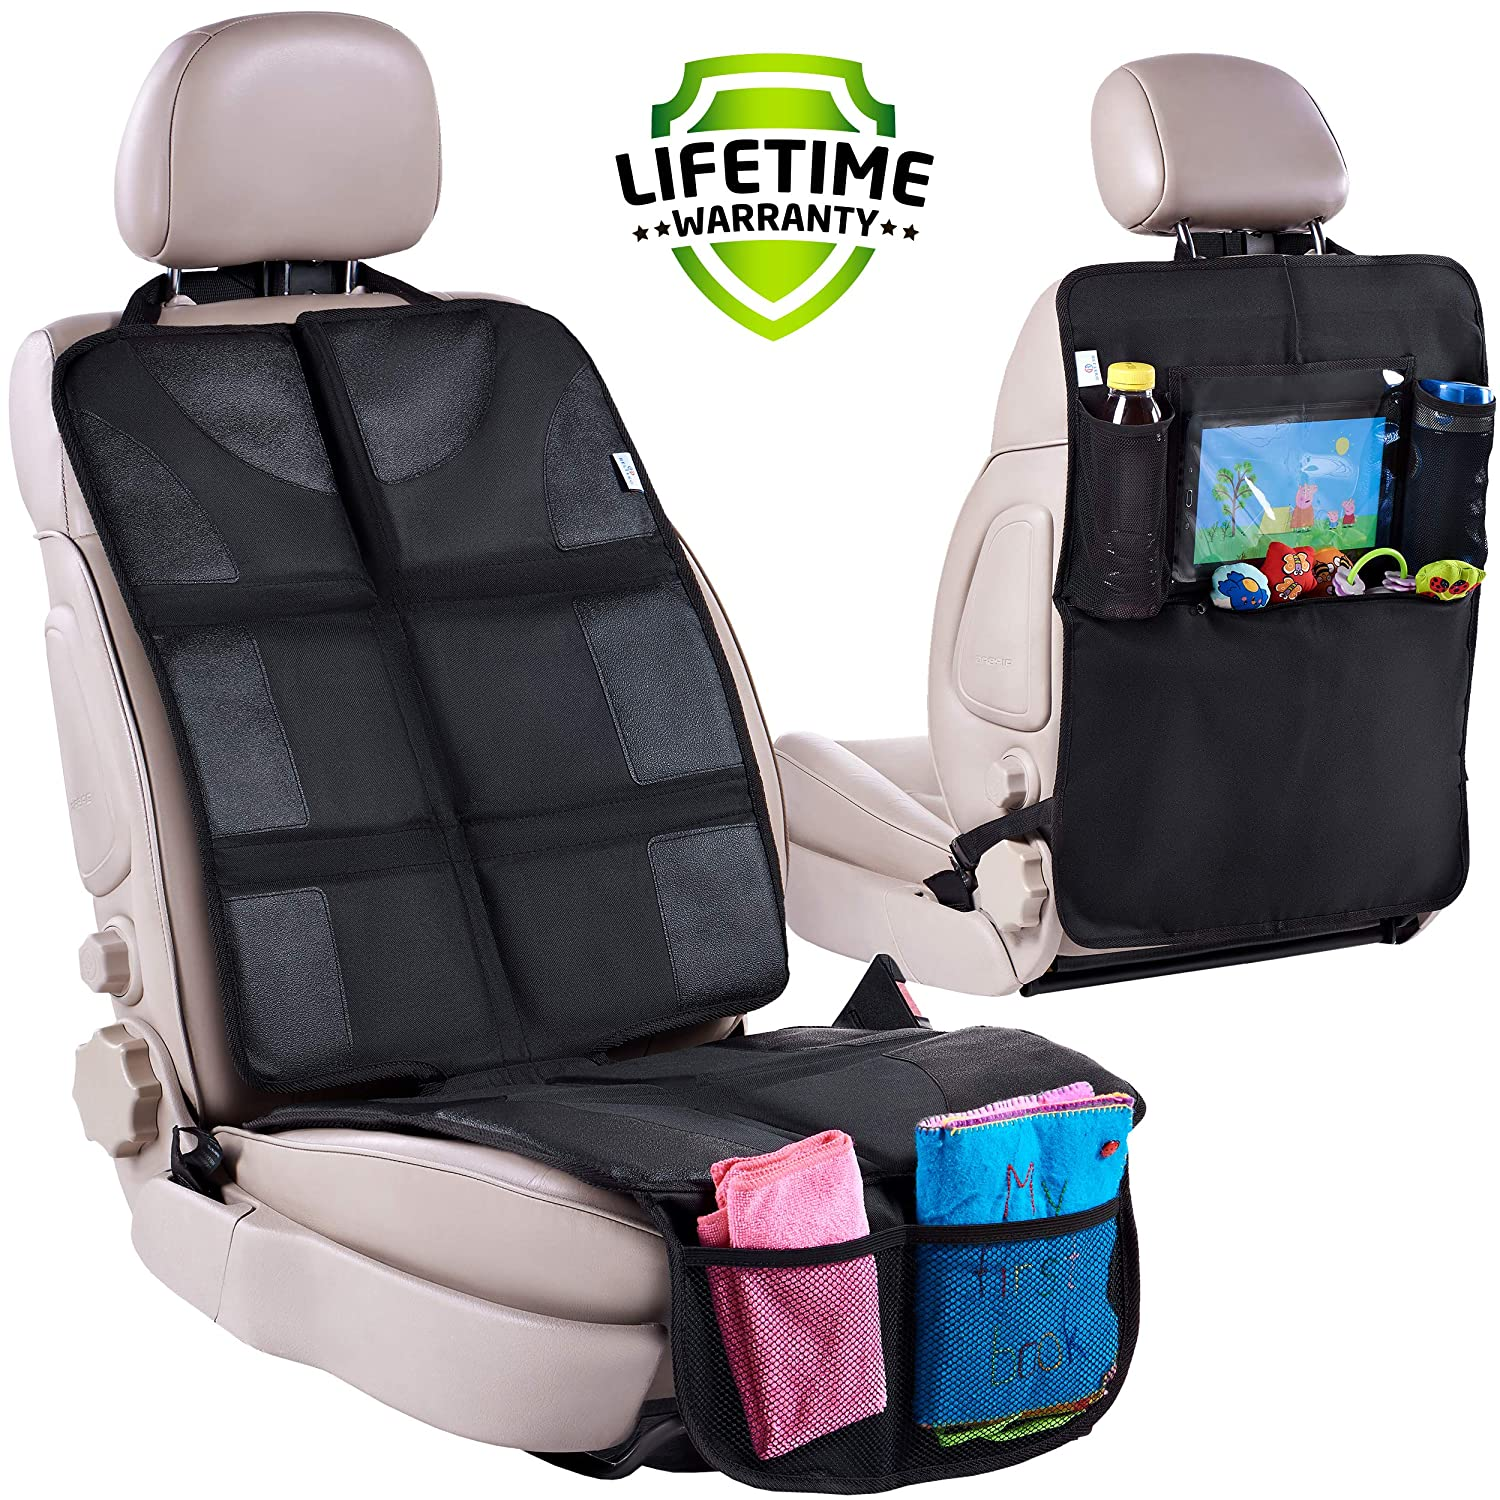 Car Seat Protector   Rear Seat Organizer for Kids - Waterproof & Stain Resistant Protective Backseat Kick Mat W/Storage Pockets & Tablet Holder - Baby Travel Kickmat & Front/Back Seat Cover Set